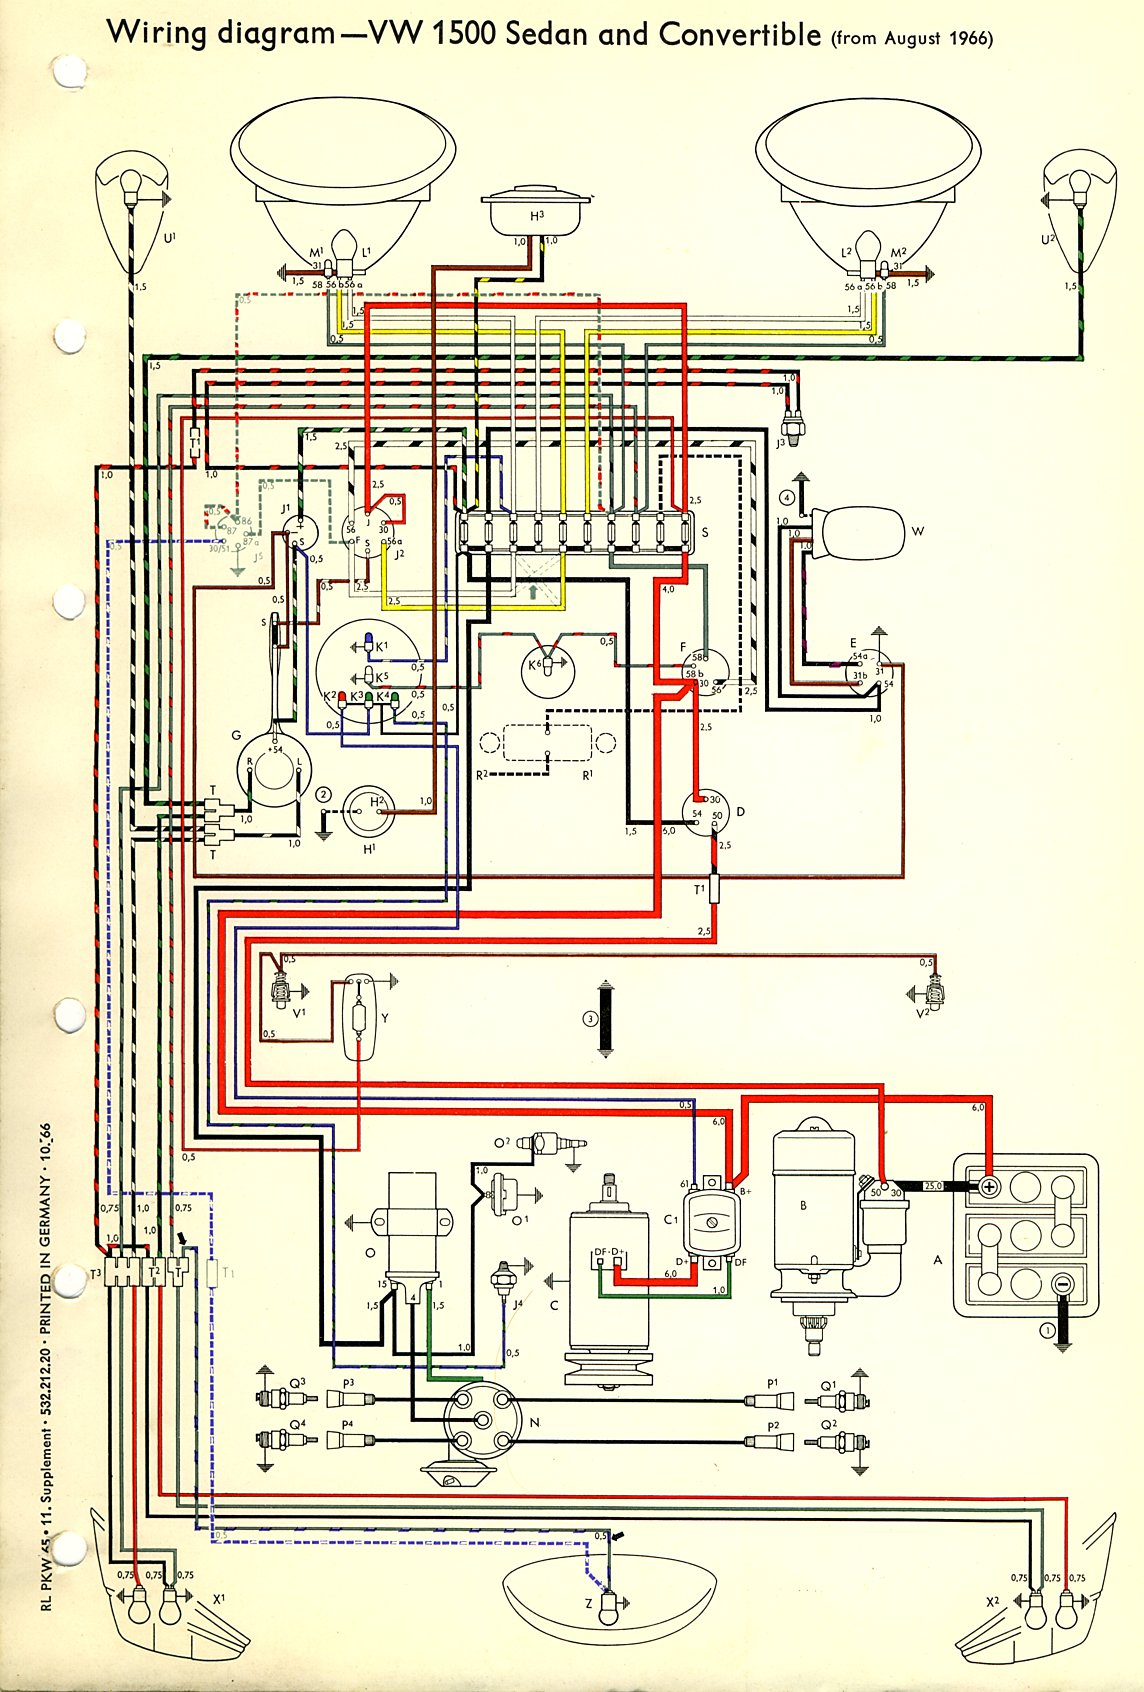 1972 vw beetle wire schematic wiring diagramthesamba com type 1 wiring diagrams 1972 vw beetle